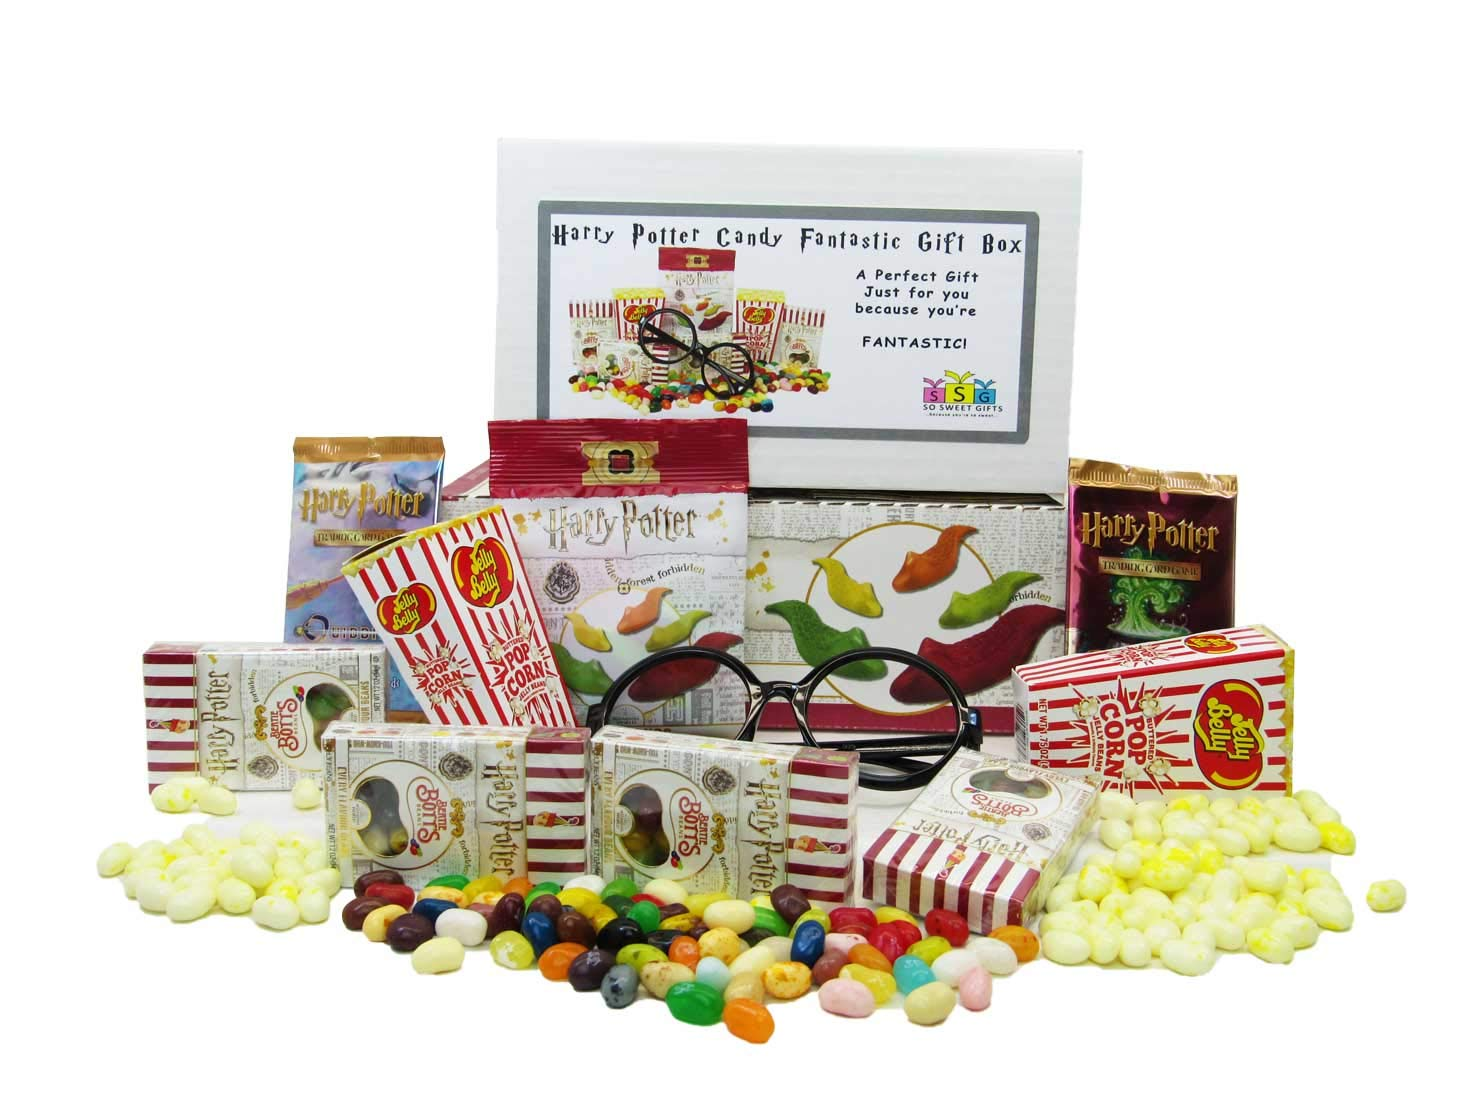 Harry Potter Candy Fantastic Gift Box by So Sweet Gifts